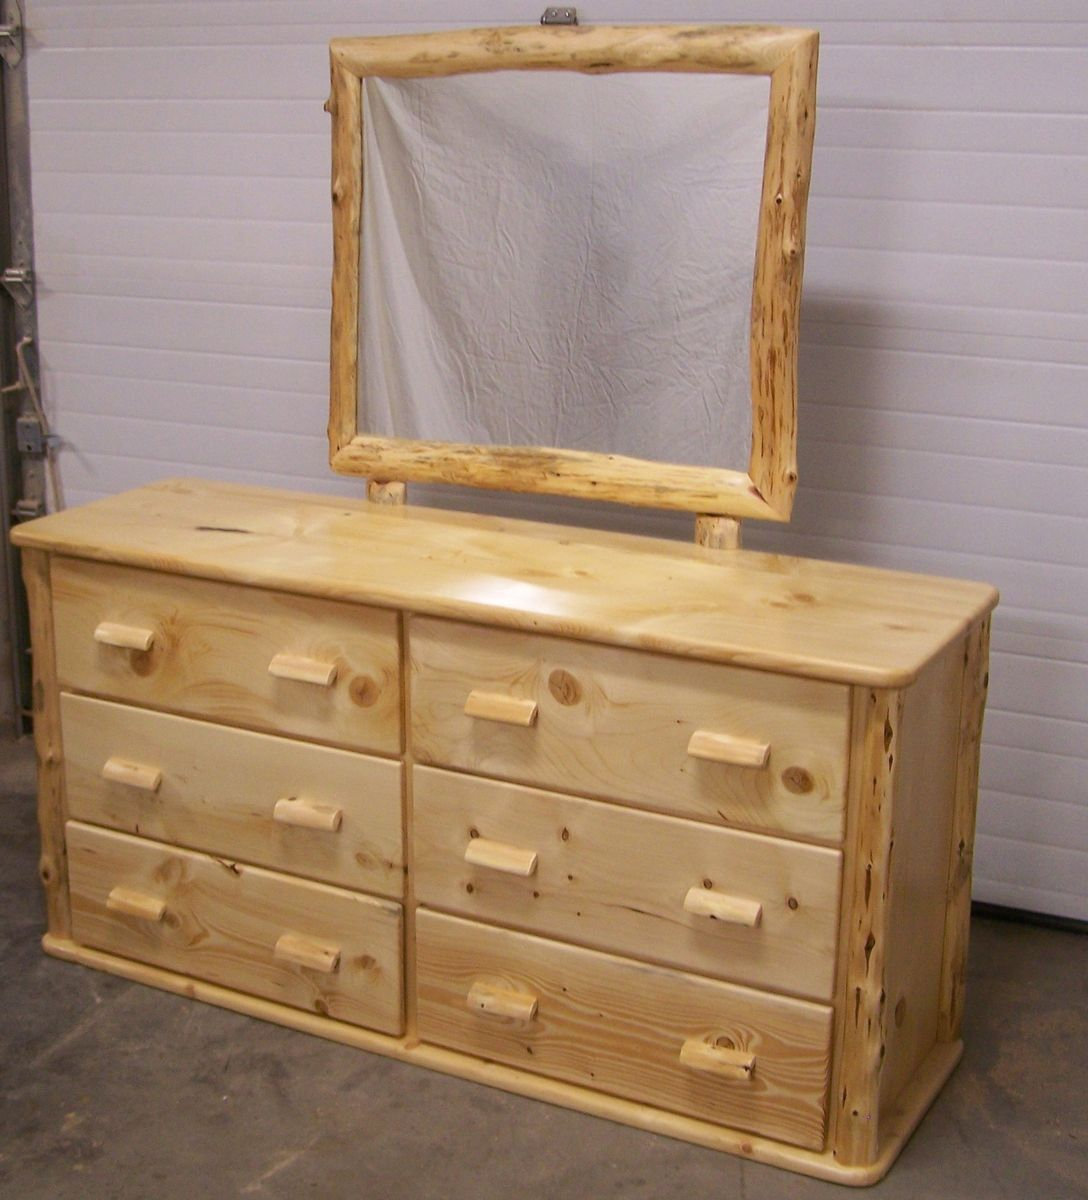 Pine dresser with mirror bestdressers 2017 - Furnitur photos ...